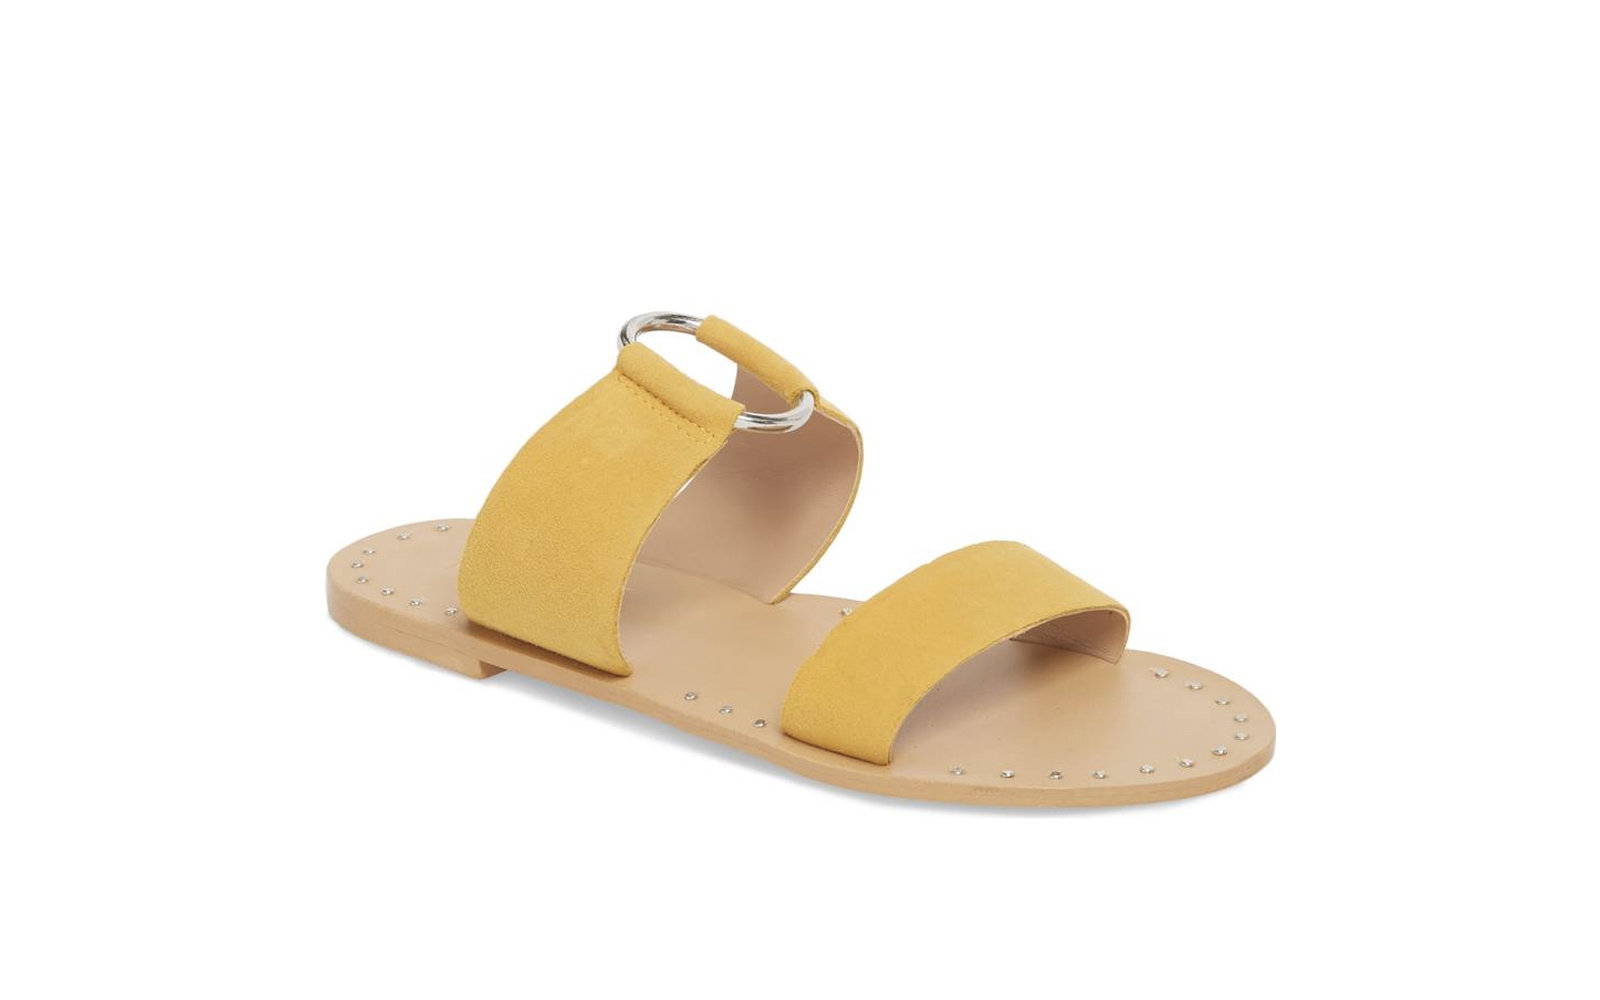 nordstrom-yellow-topshop-ring-sandals-SLIDESHOES0518